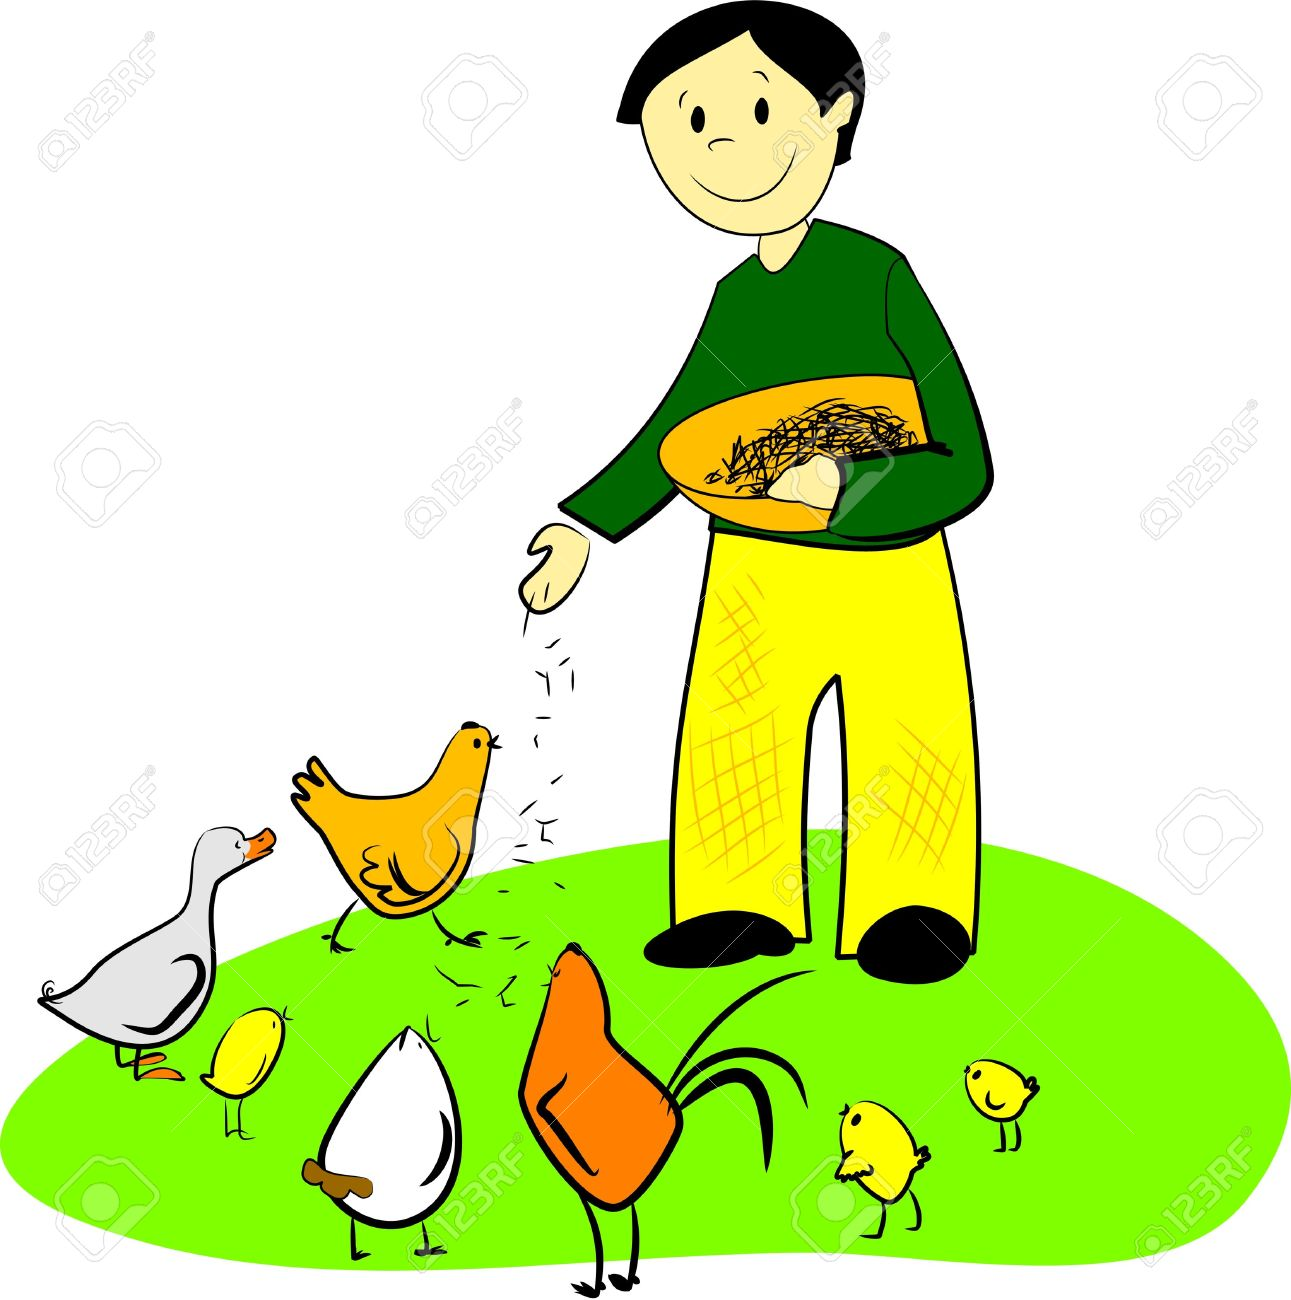 Birdfeeding clipart #13, Download drawings